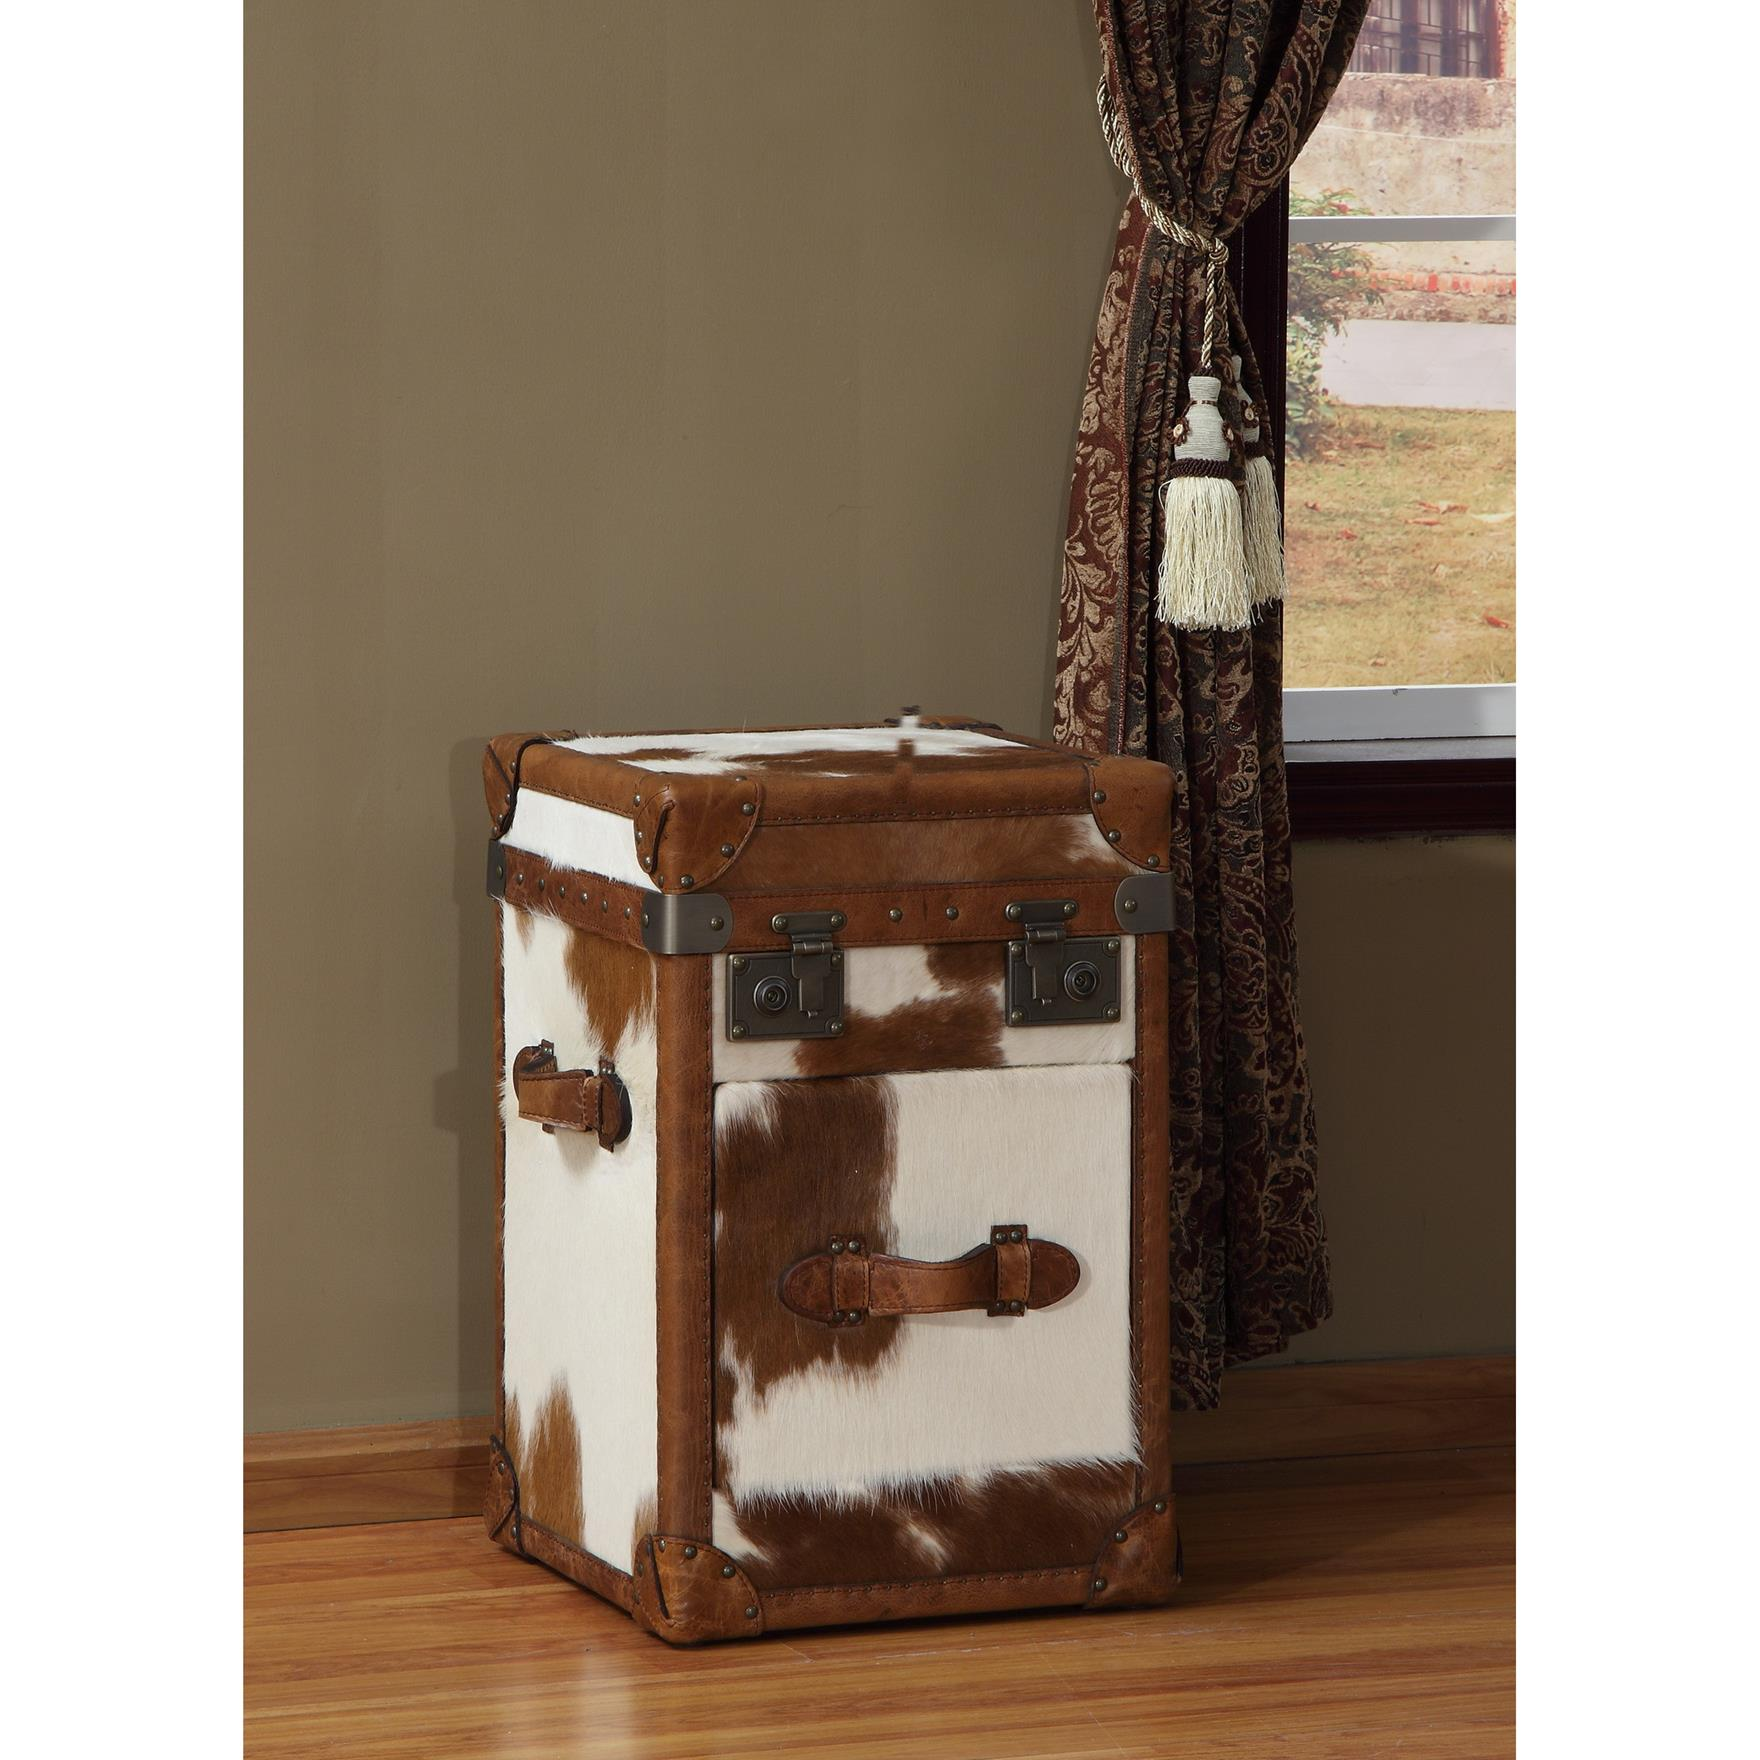 Lazzaro Caledonia Leather 1 Drawer Steamer Side Table in Longhorn Brown Cow & Caramel